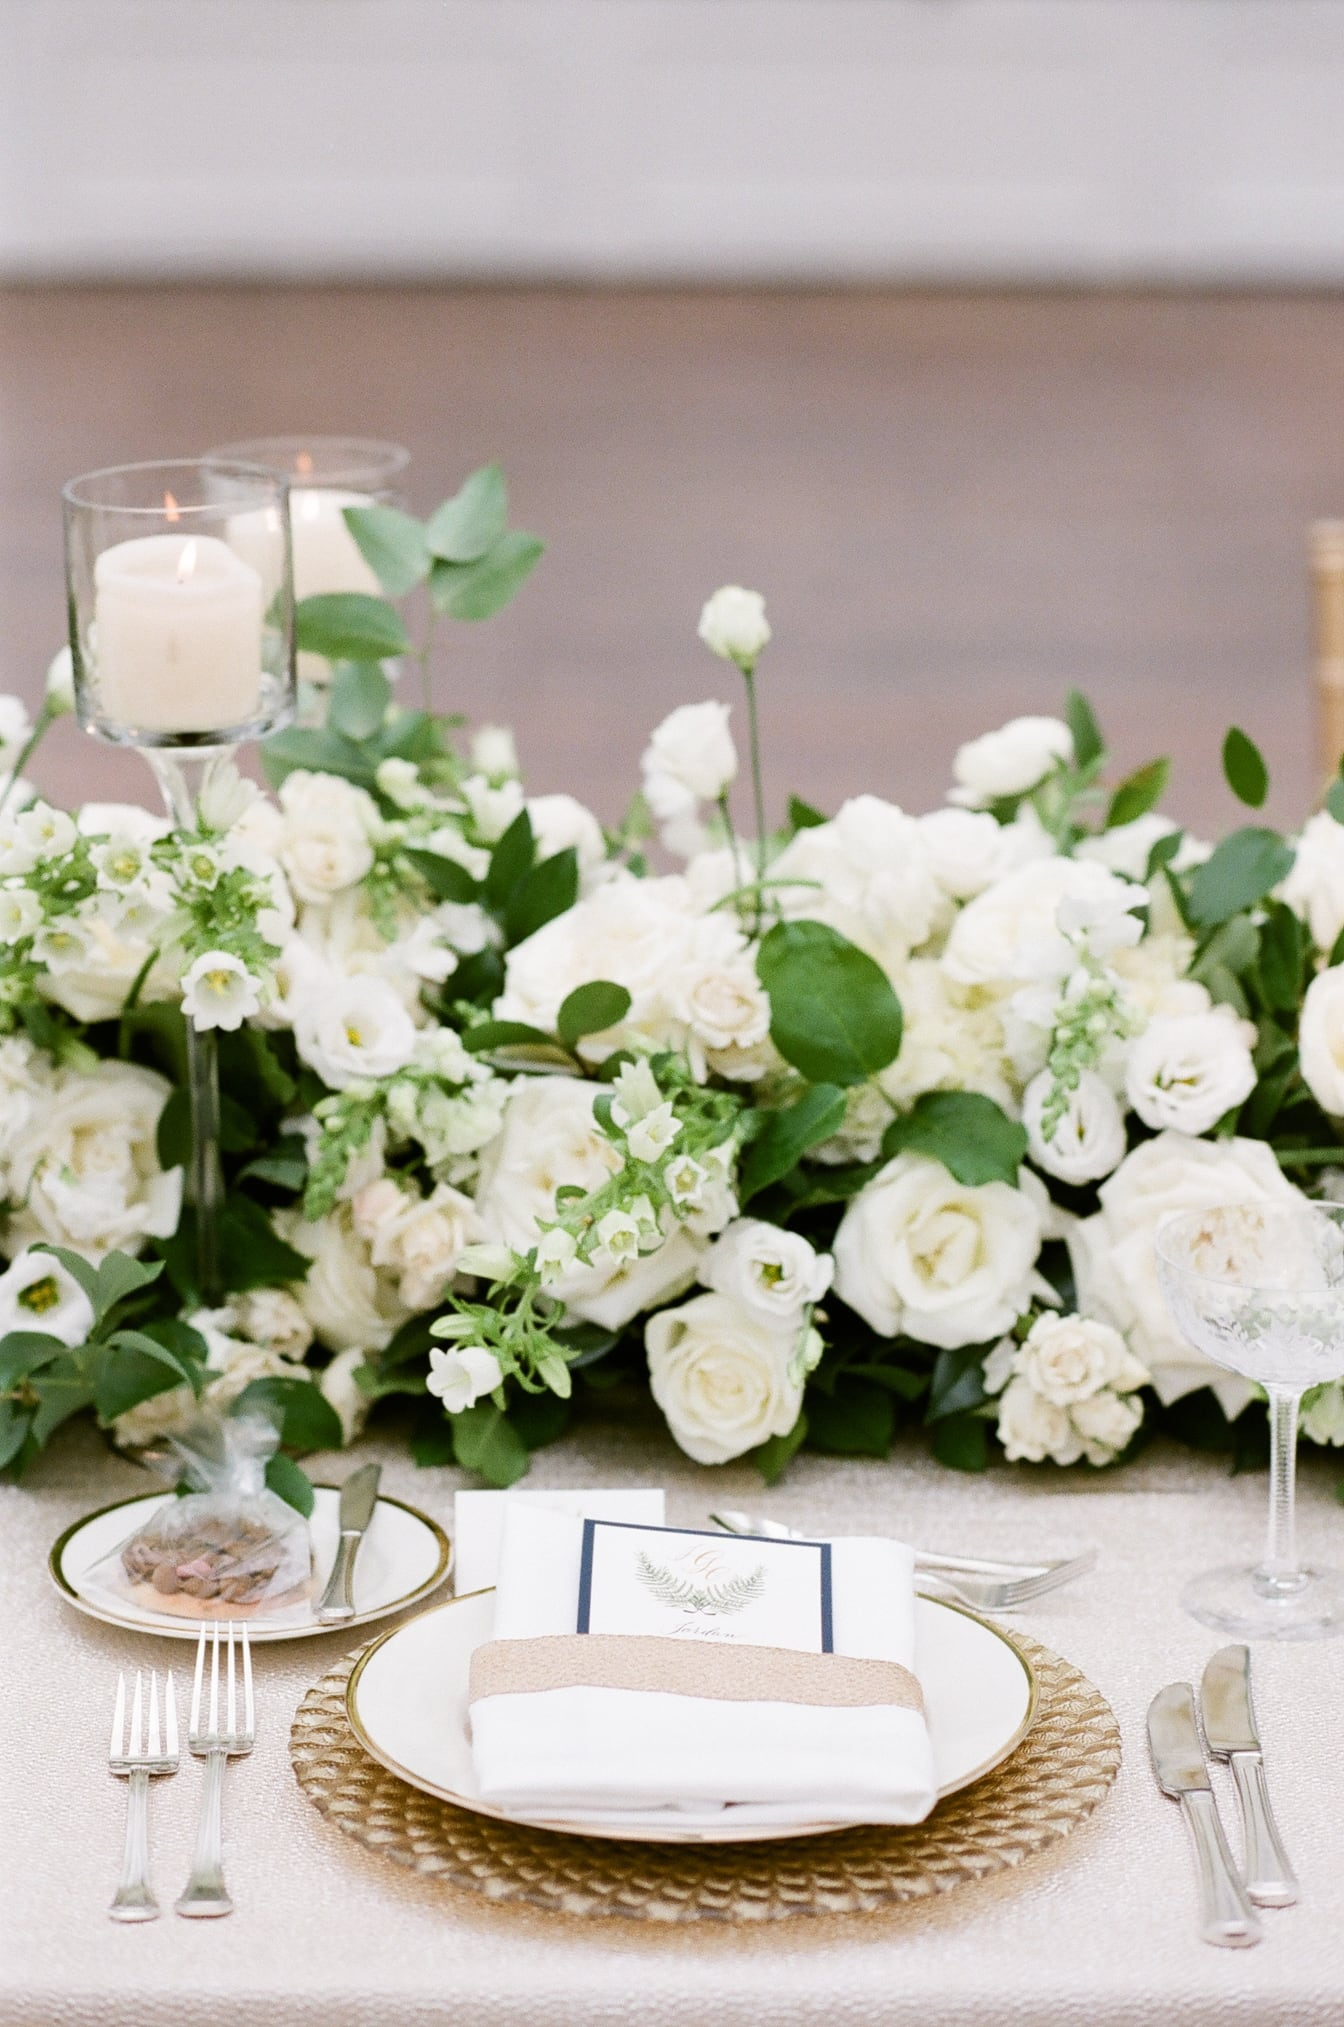 Plate setting with silverware and background of white floral arrangement